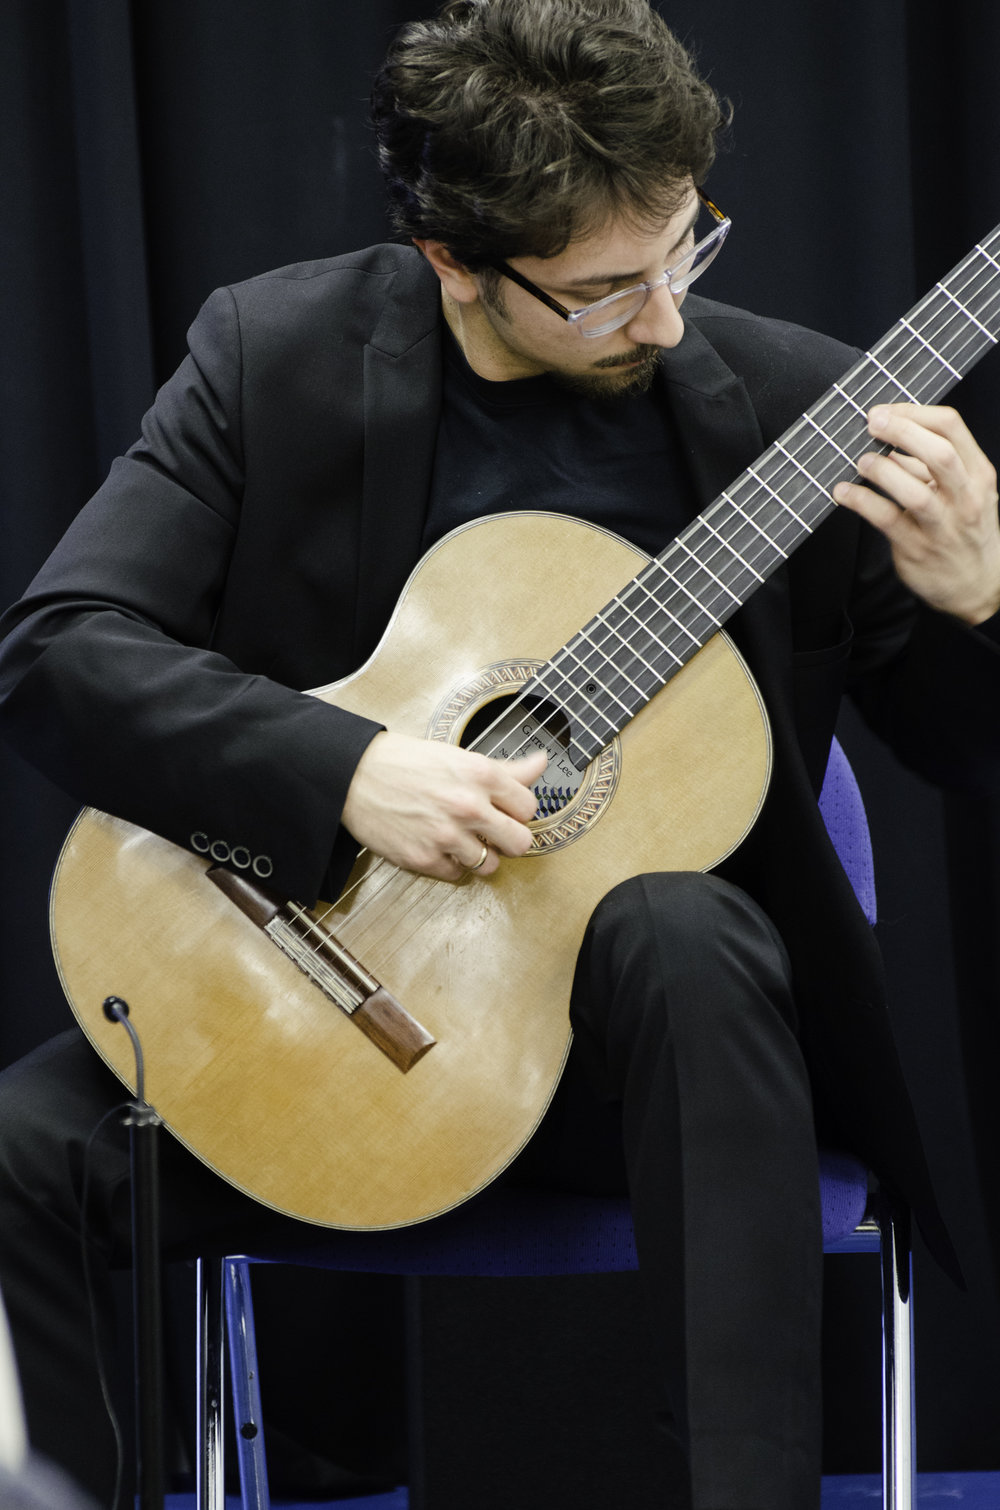 international_artist_concert_fort_lee_master_guitarist.jpg